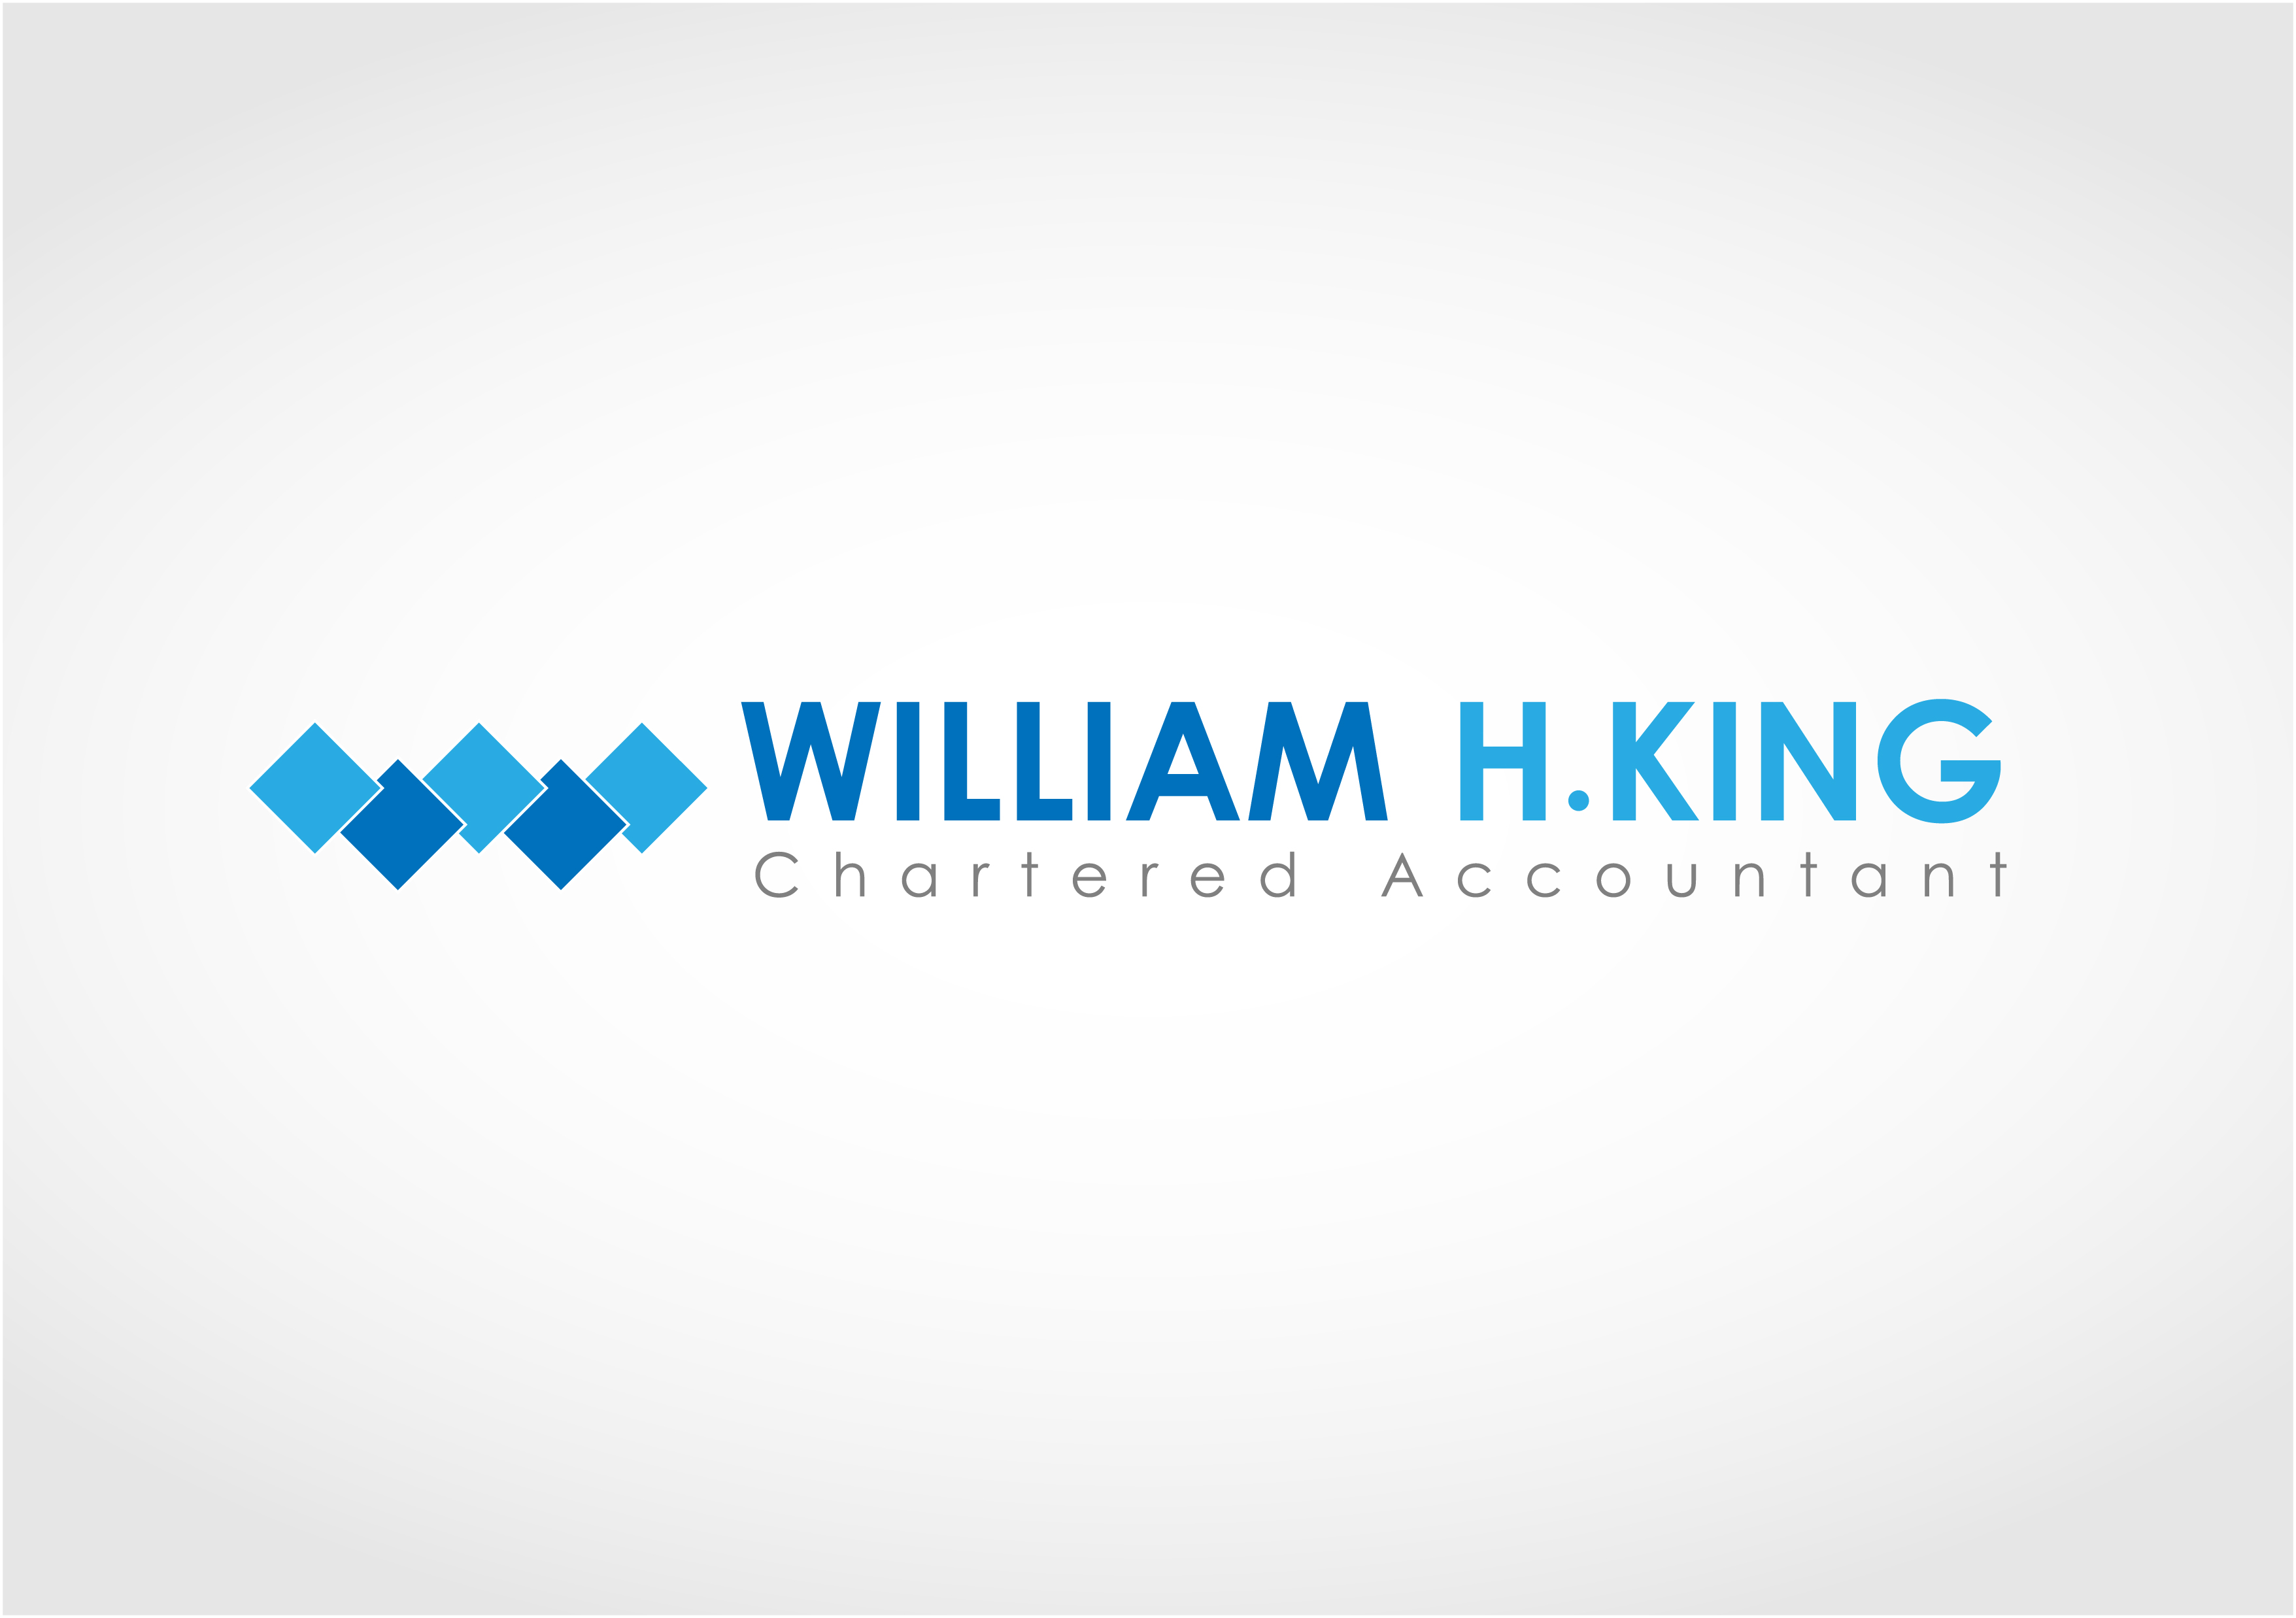 Logo Design by 3draw - Entry No. 95 in the Logo Design Contest New Logo Design for William H. King, Chartered Accountant.